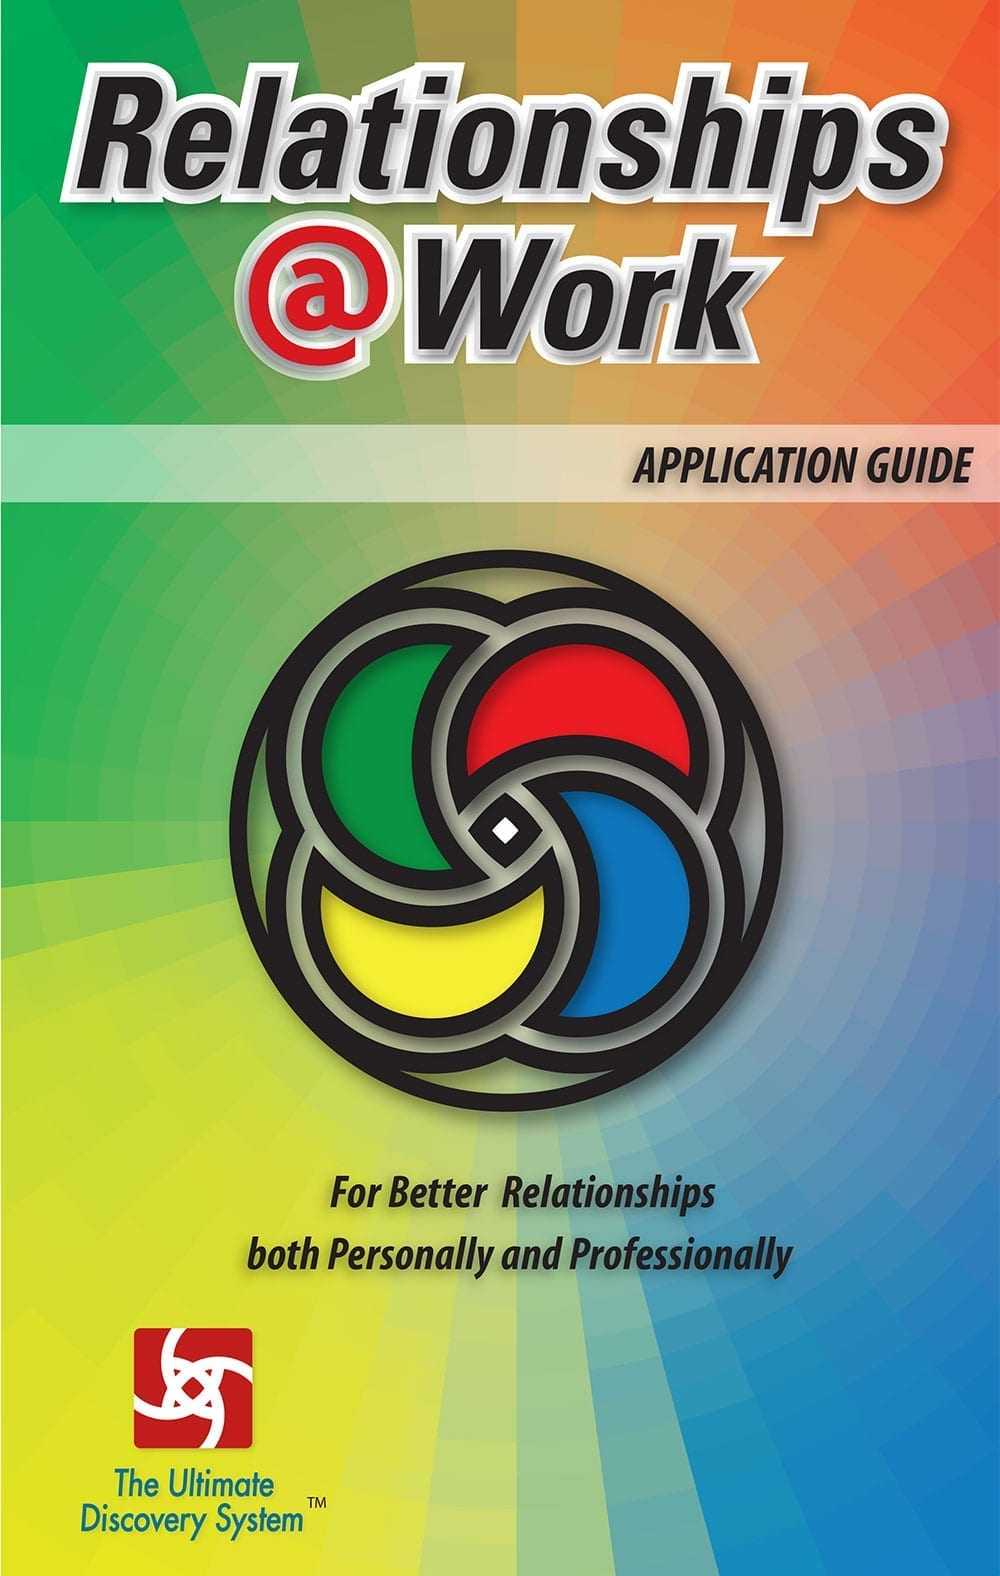 Relationships @ Work (booklet)